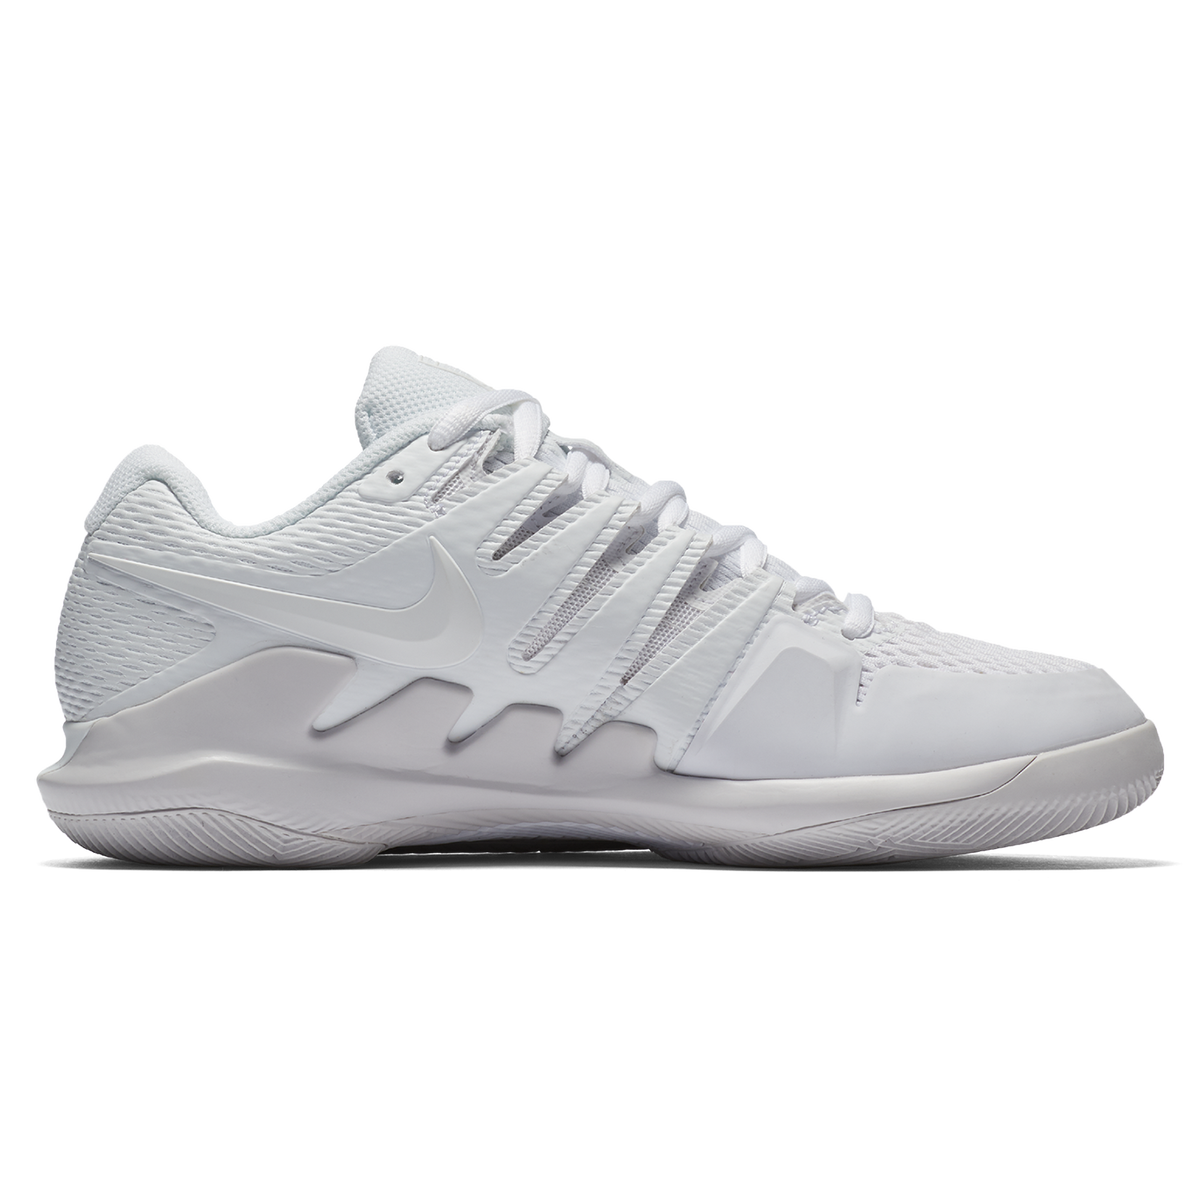 84b9dde789b41 Images. Nike Air Zoom Vapor X Women  39 s Tennis Shoe ...